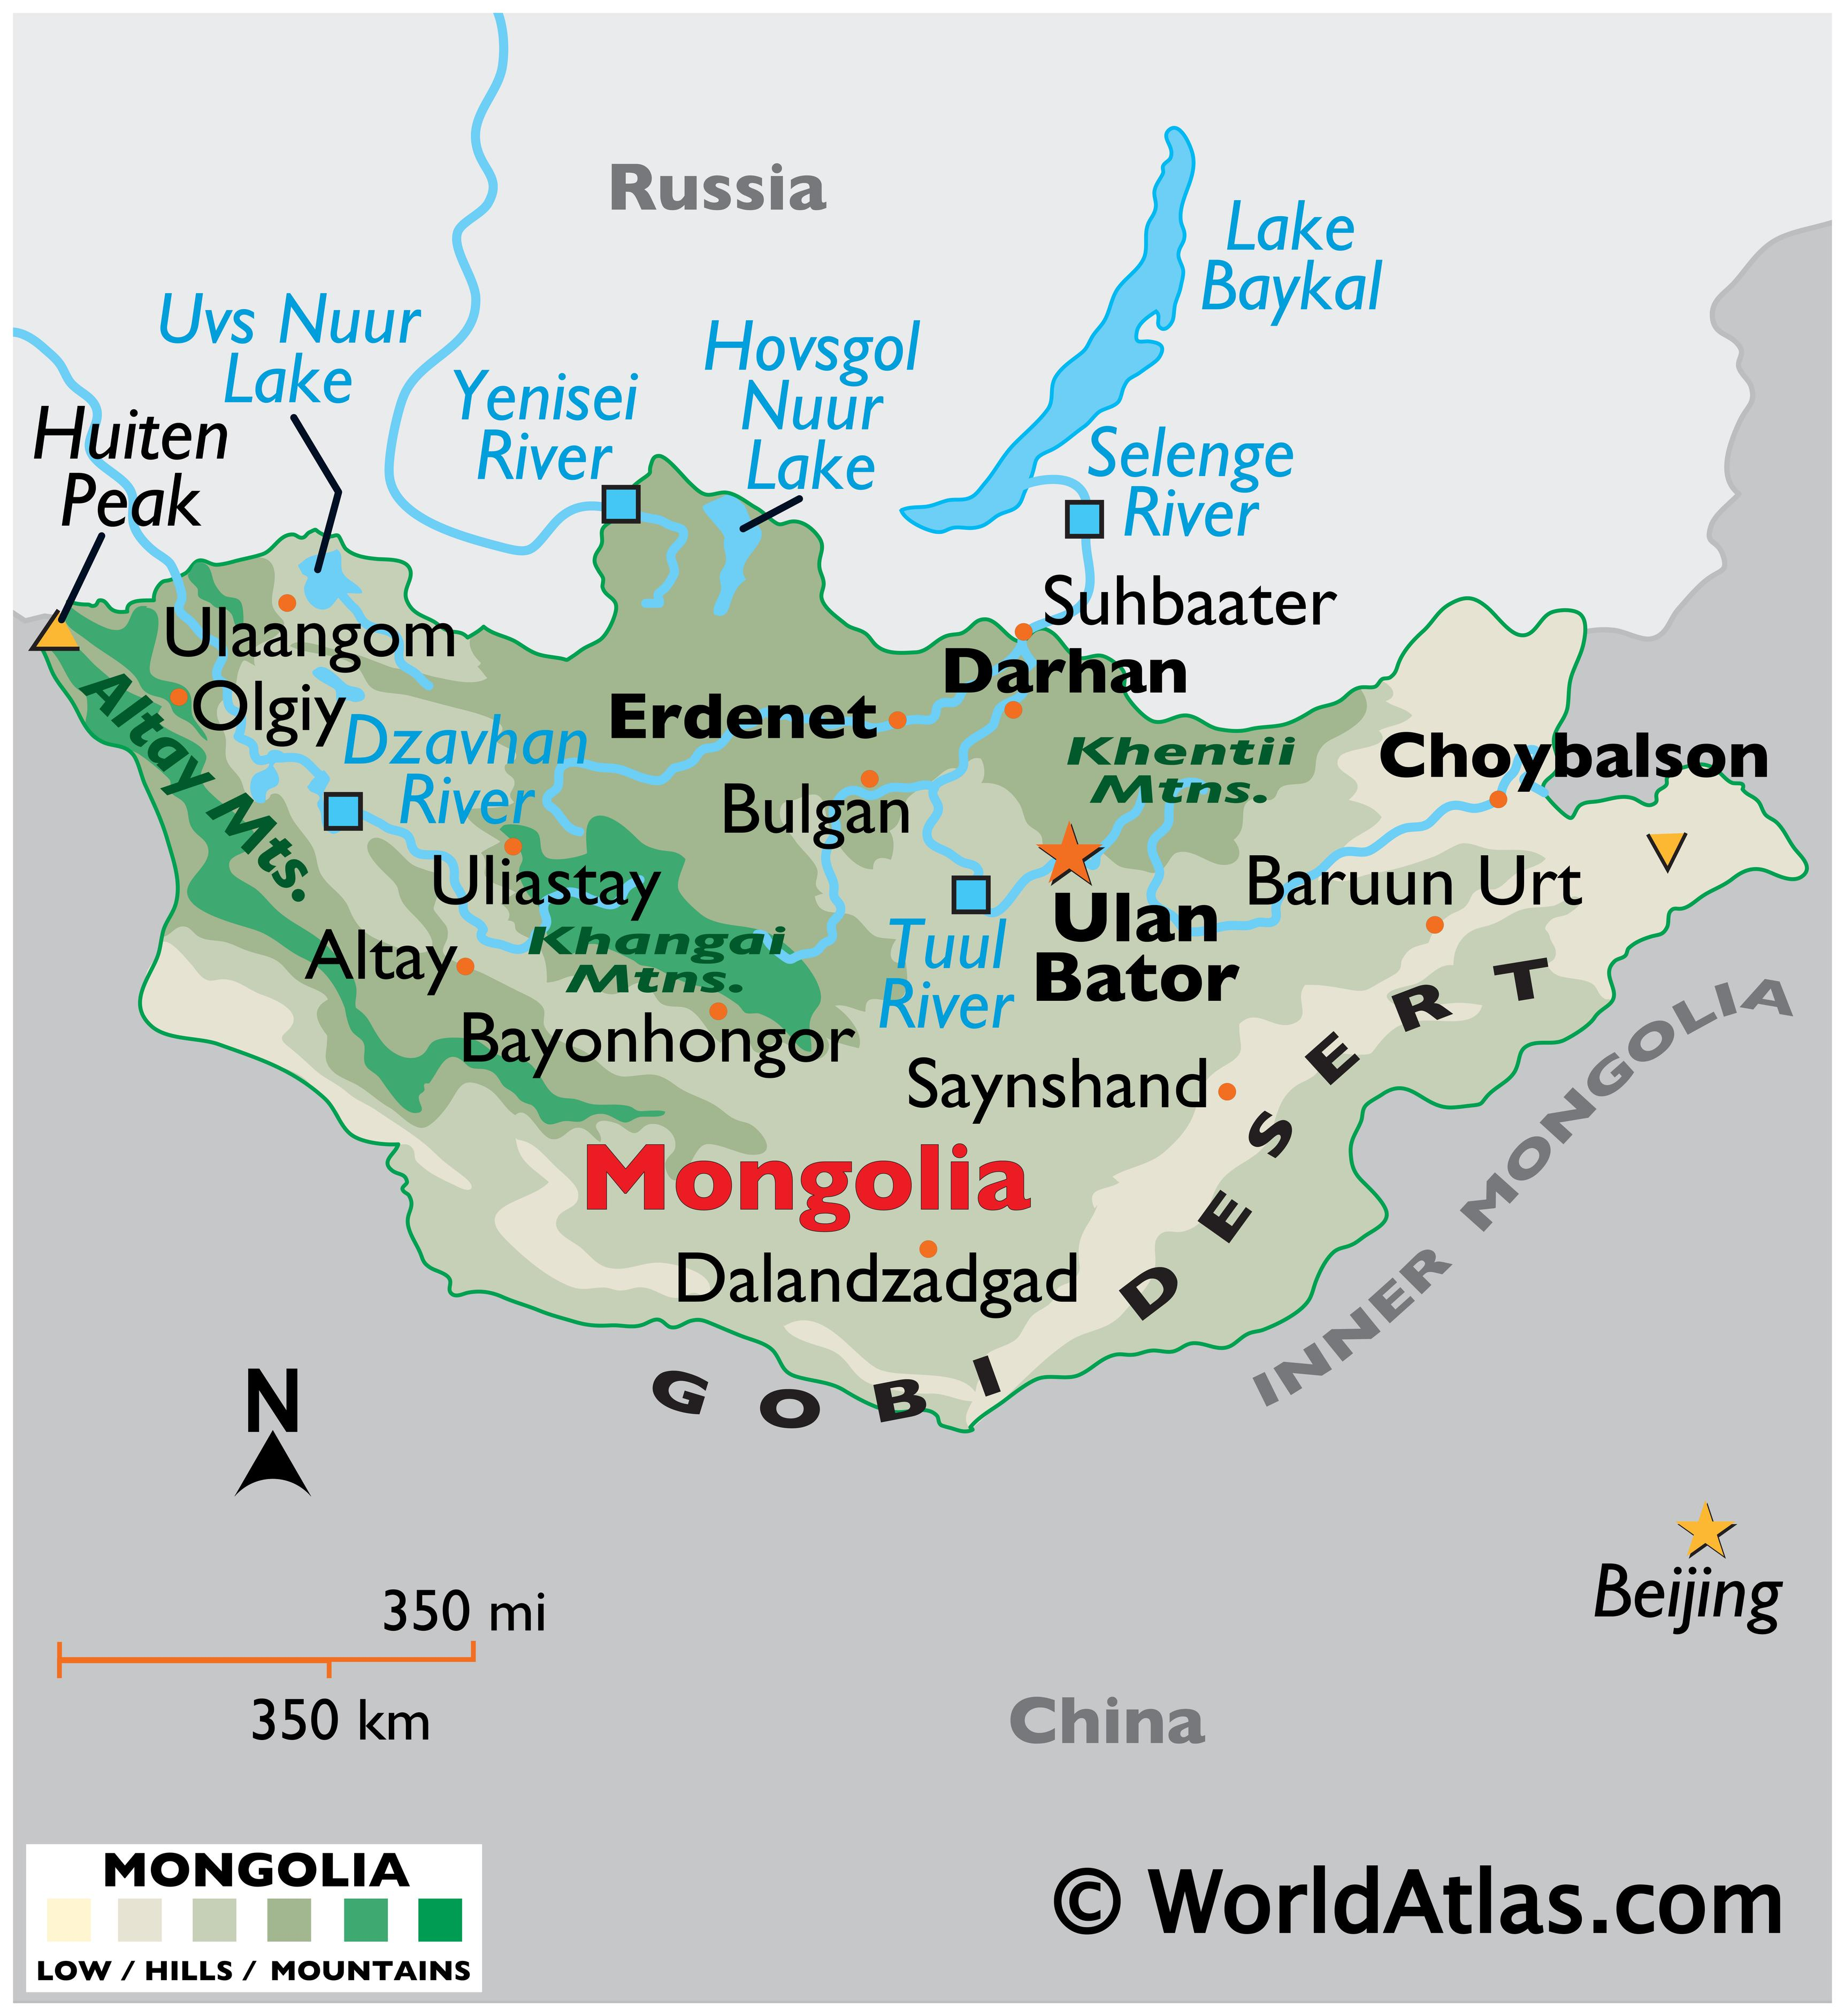 Physical Map of Mongolia showing international boundaries, relief, highest and lowest points, important cities, major mountain ranges, important rivers, the Gobi Desert, etc.